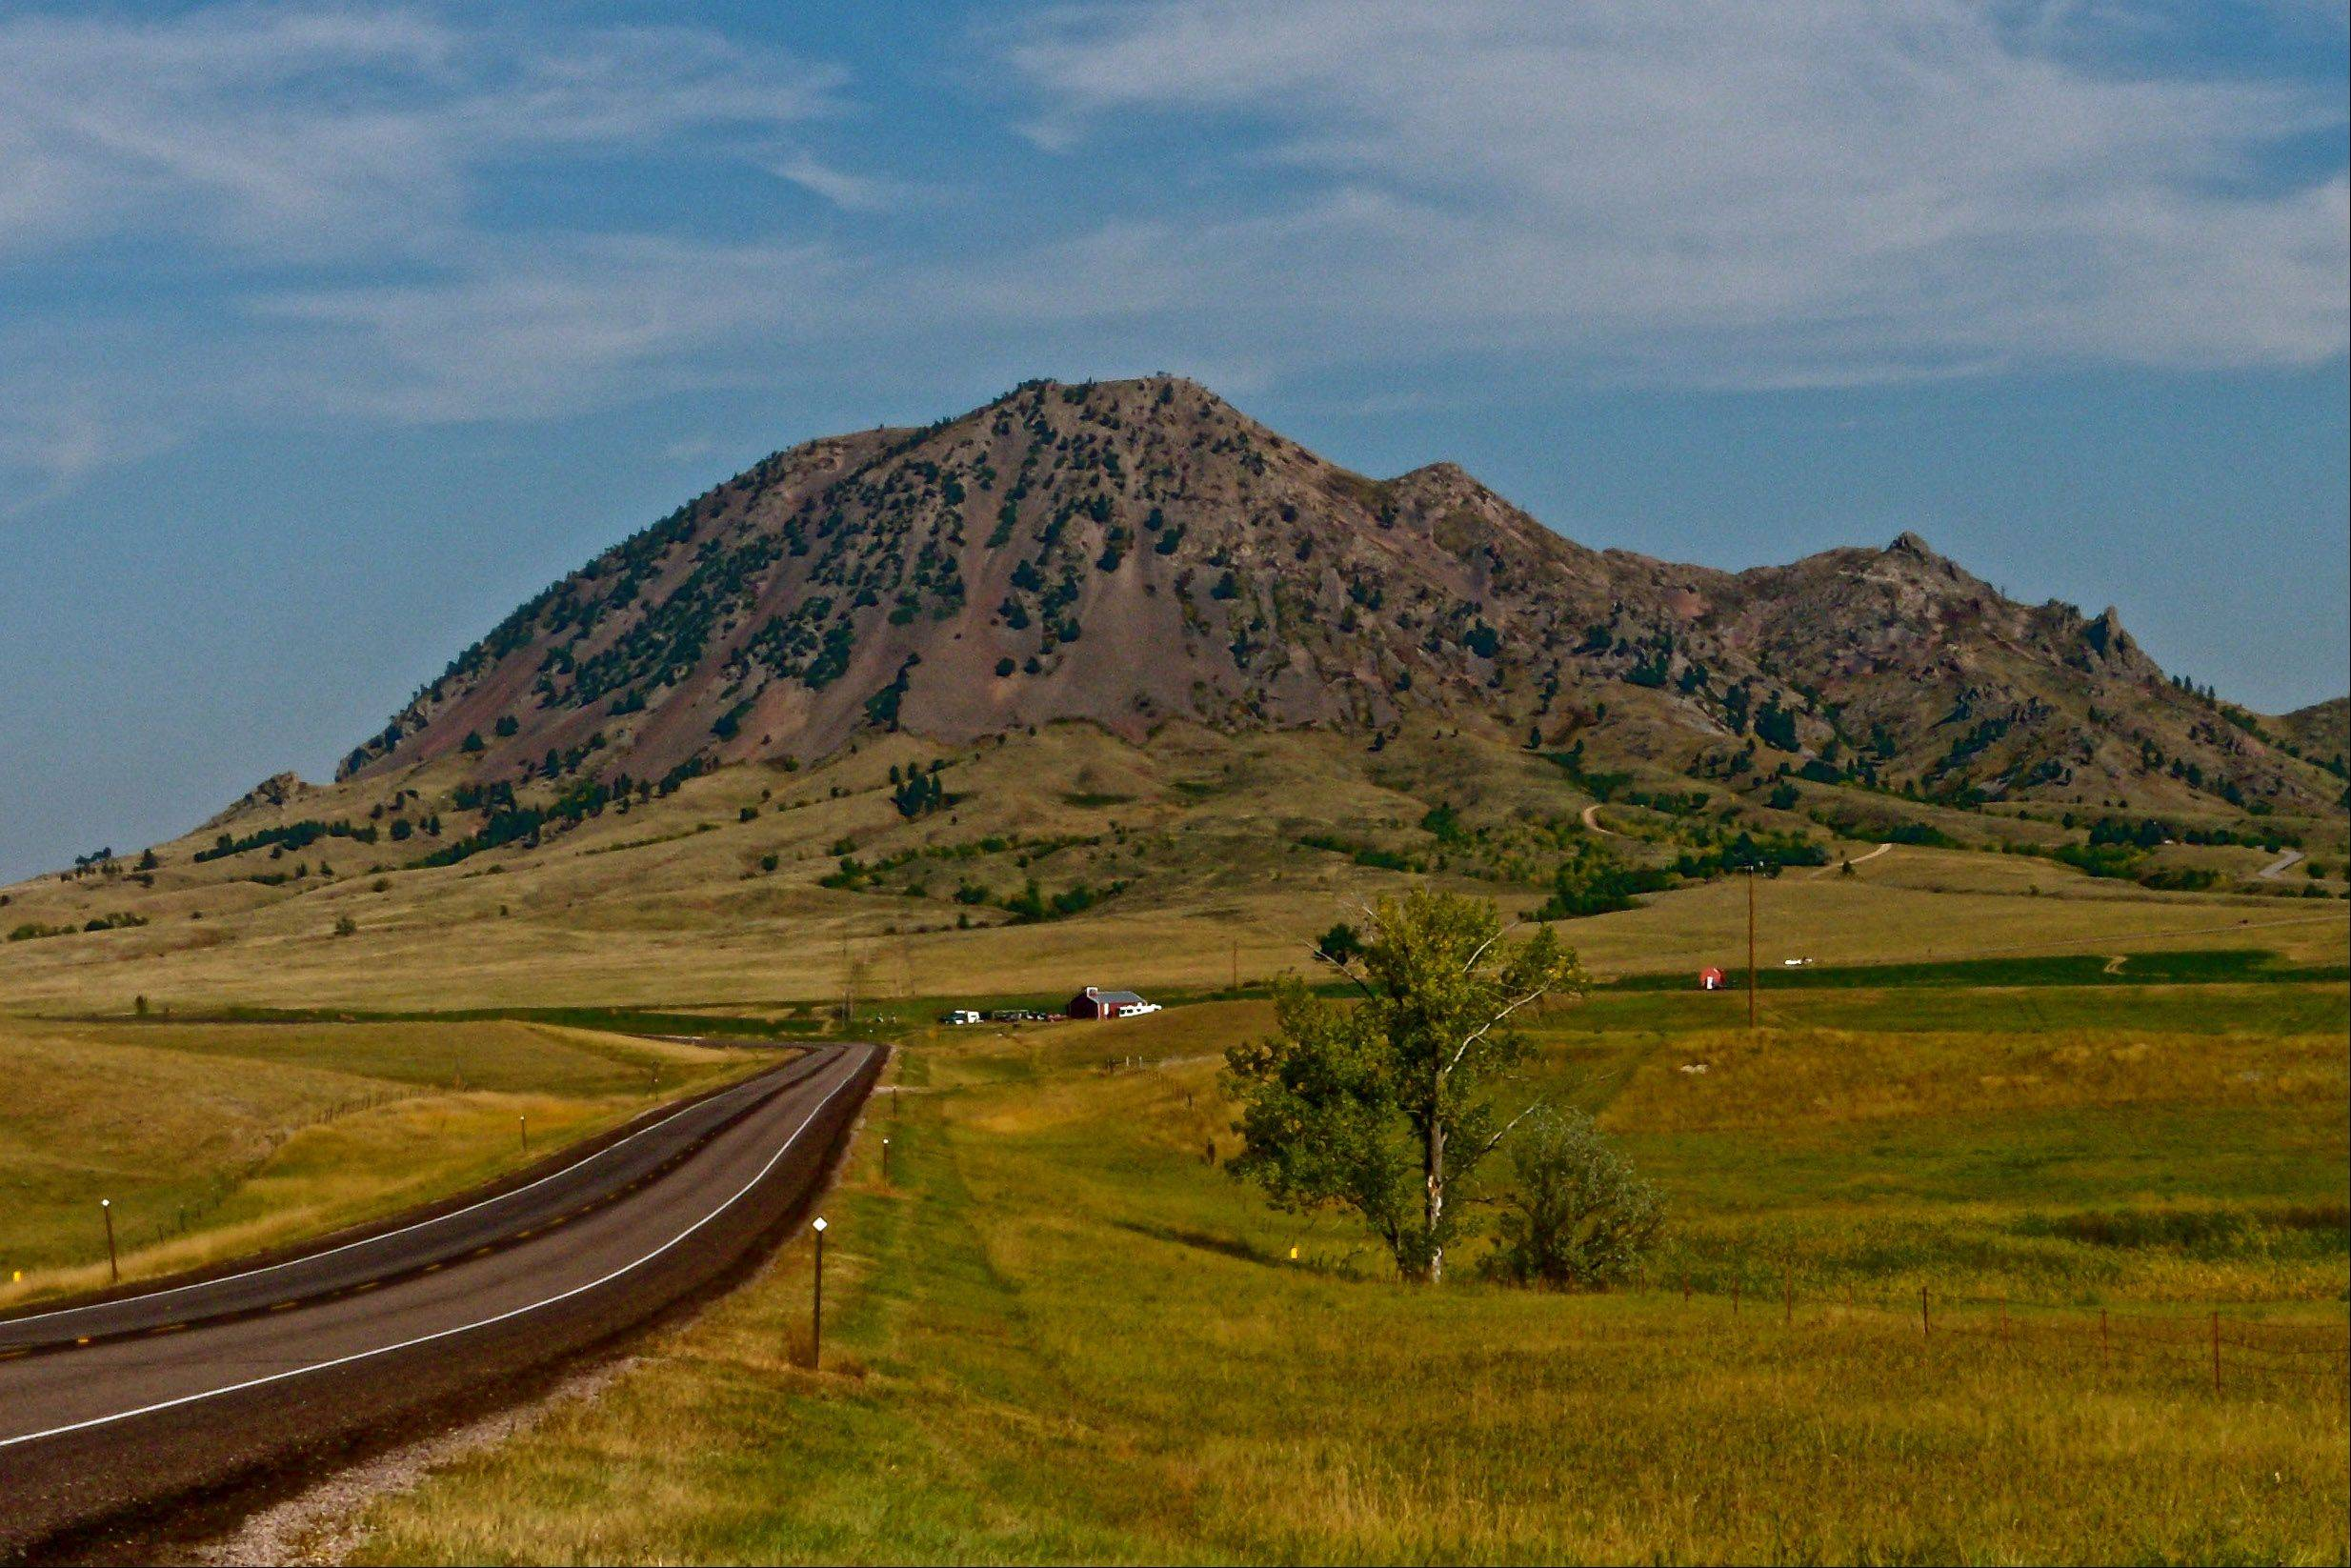 This is a picture of Bear Butte which is about ten miles from Sturgis, SD. This is sacred ground to several Native American tribes. Prayer flags can be found all along the trails that we used to get to the top.